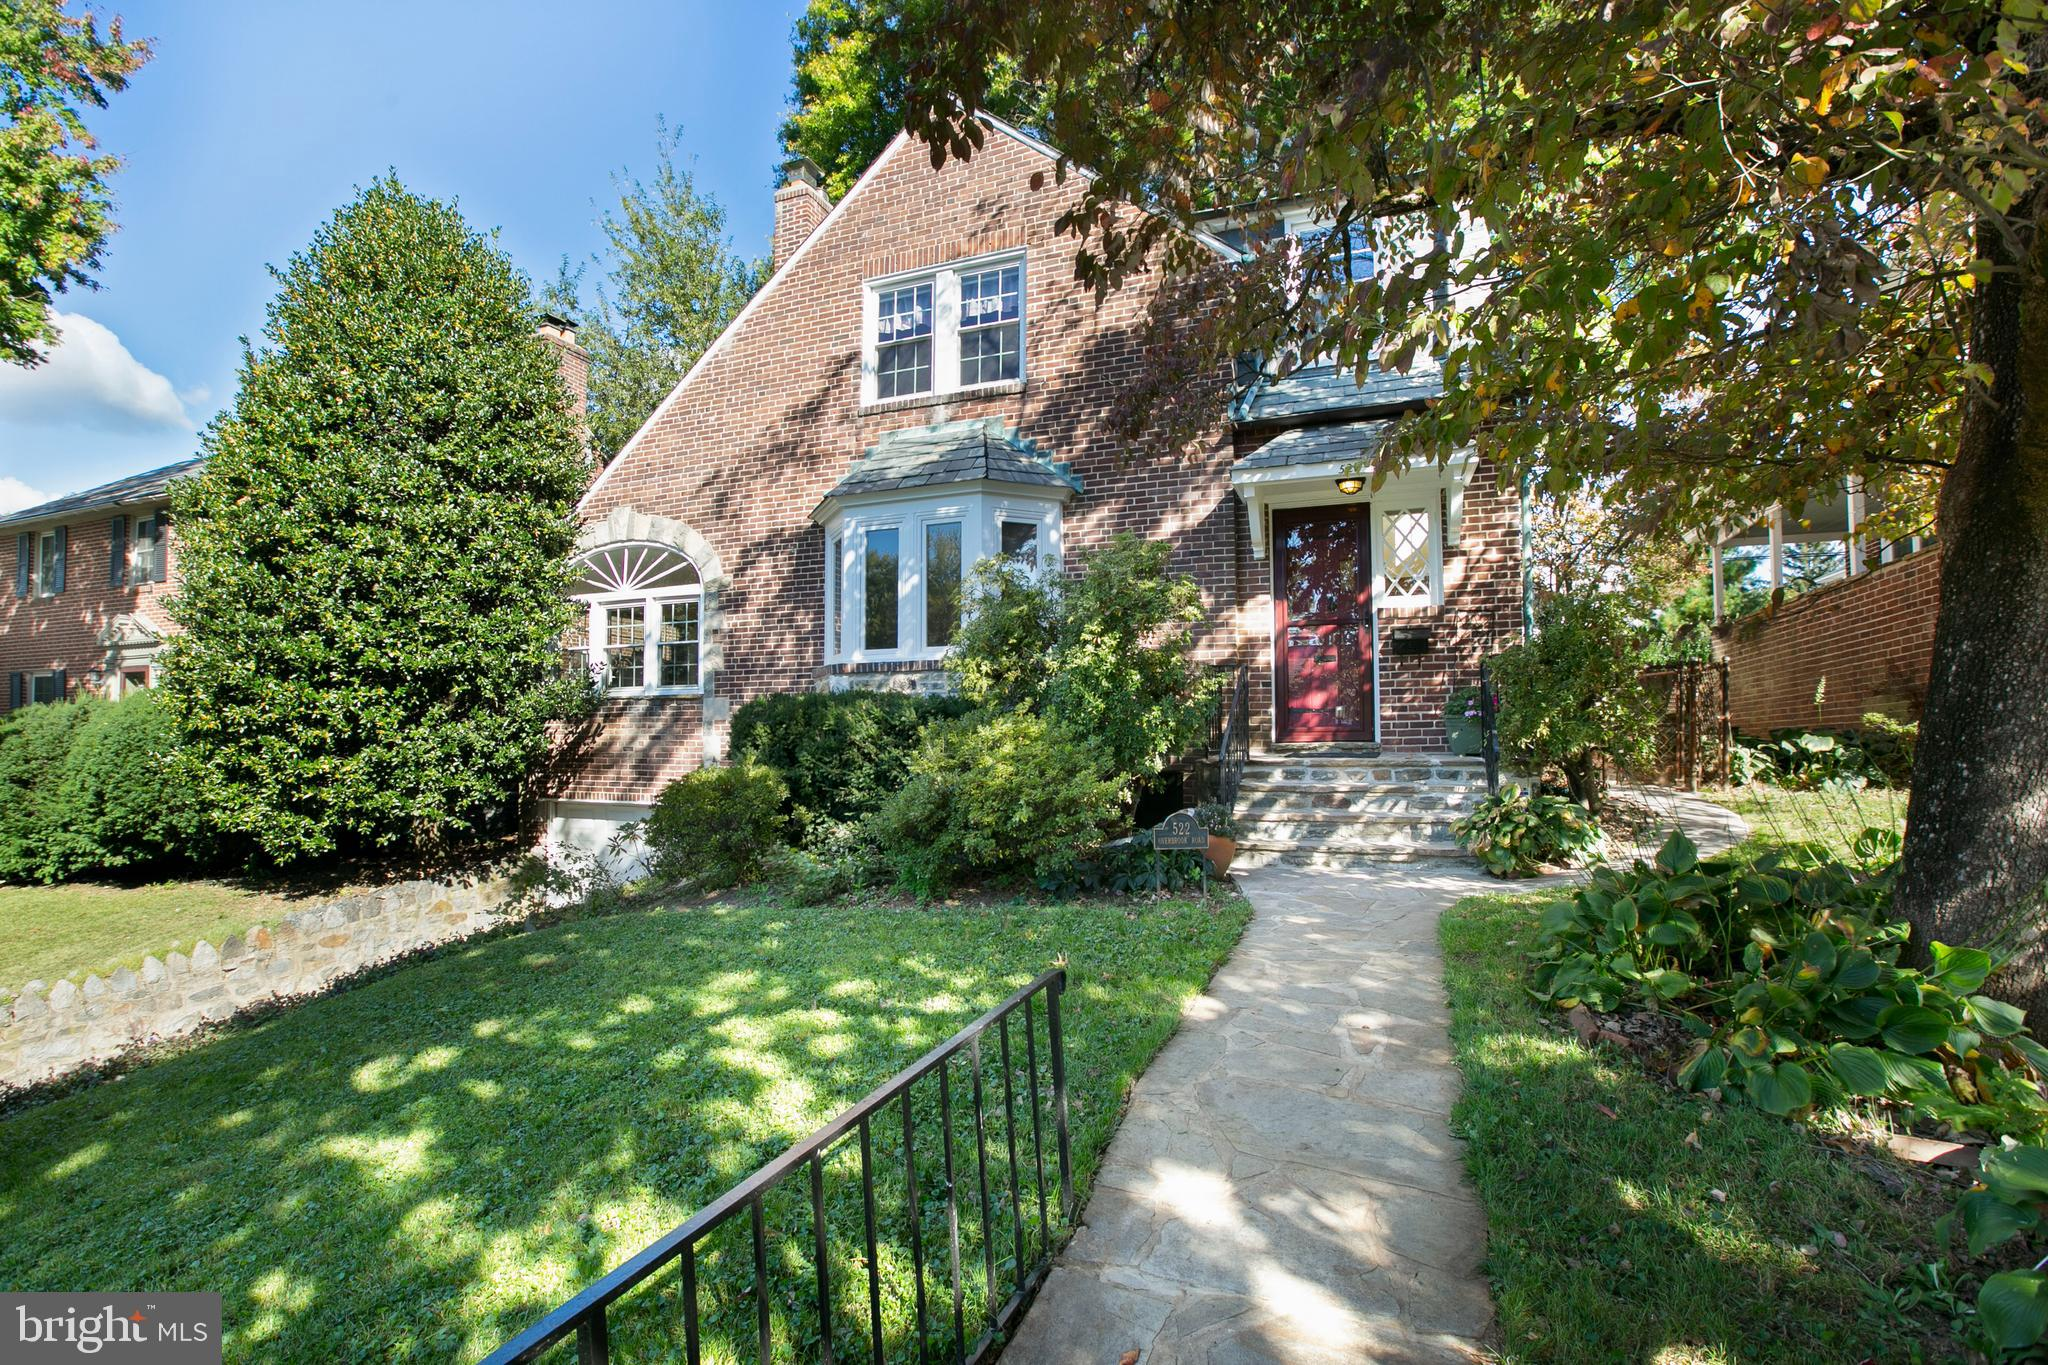 522 Overbrook, Baltimore, MD 21212